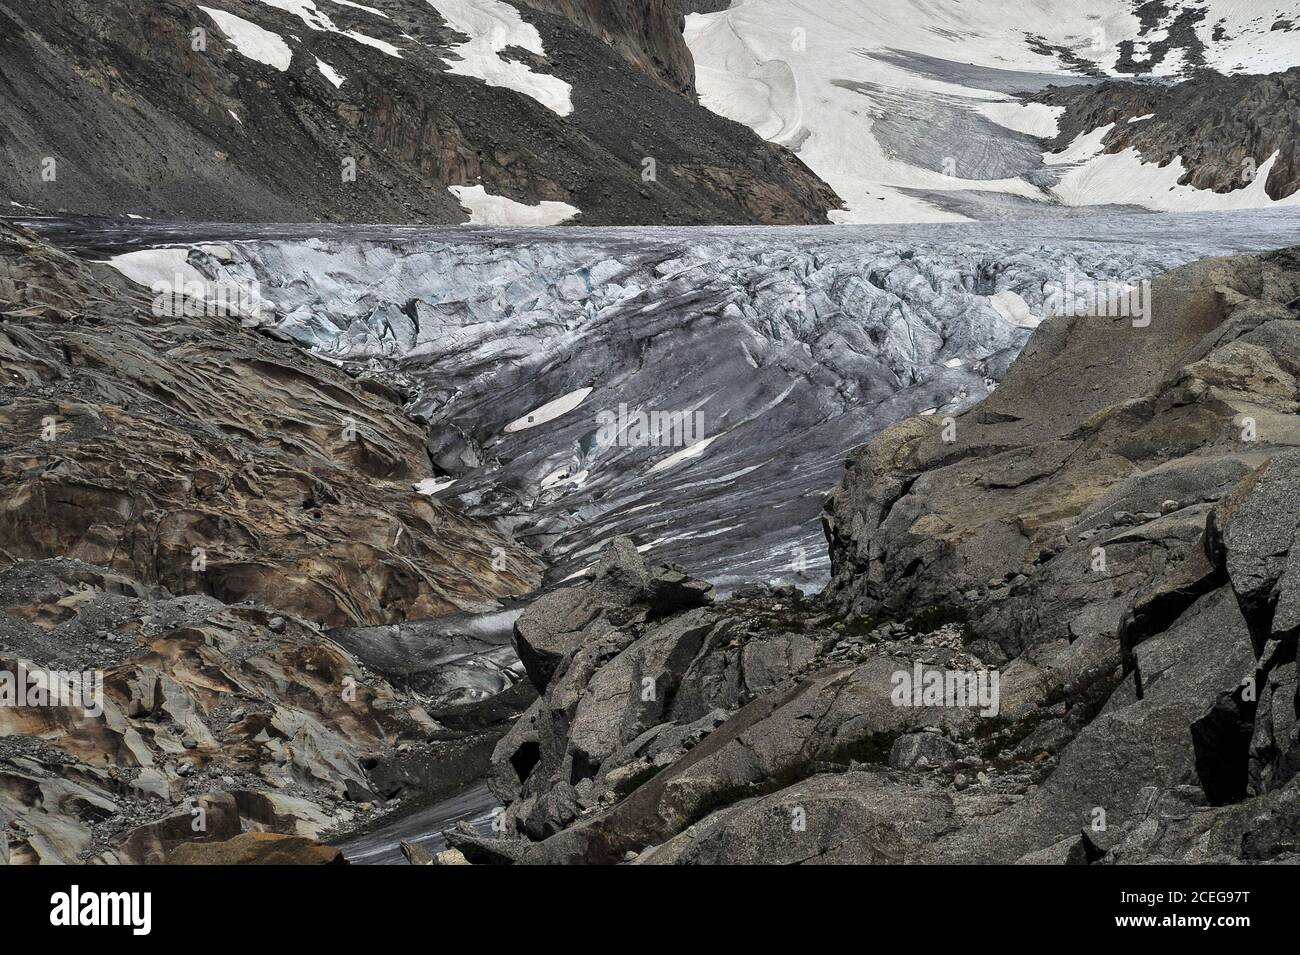 The deeply fissured Rhône Glacier flows at about 30 to 40 m (100 to 130 ft) per year from snow fields on the slopes of the 3,383 m (11,099 ft) Tieralplistock to a point below the Furka Pass in Valais canton, Switzerland, where the ice melts in a green lake at an altitude of about 2,208 m (7,244 ft).  The melt water thunders into the valley basin far below to begin the River Rhône's 813 km (505 mi) journey to the Mediterranean Sea via southern France and the Camargue delta. Stock Photo